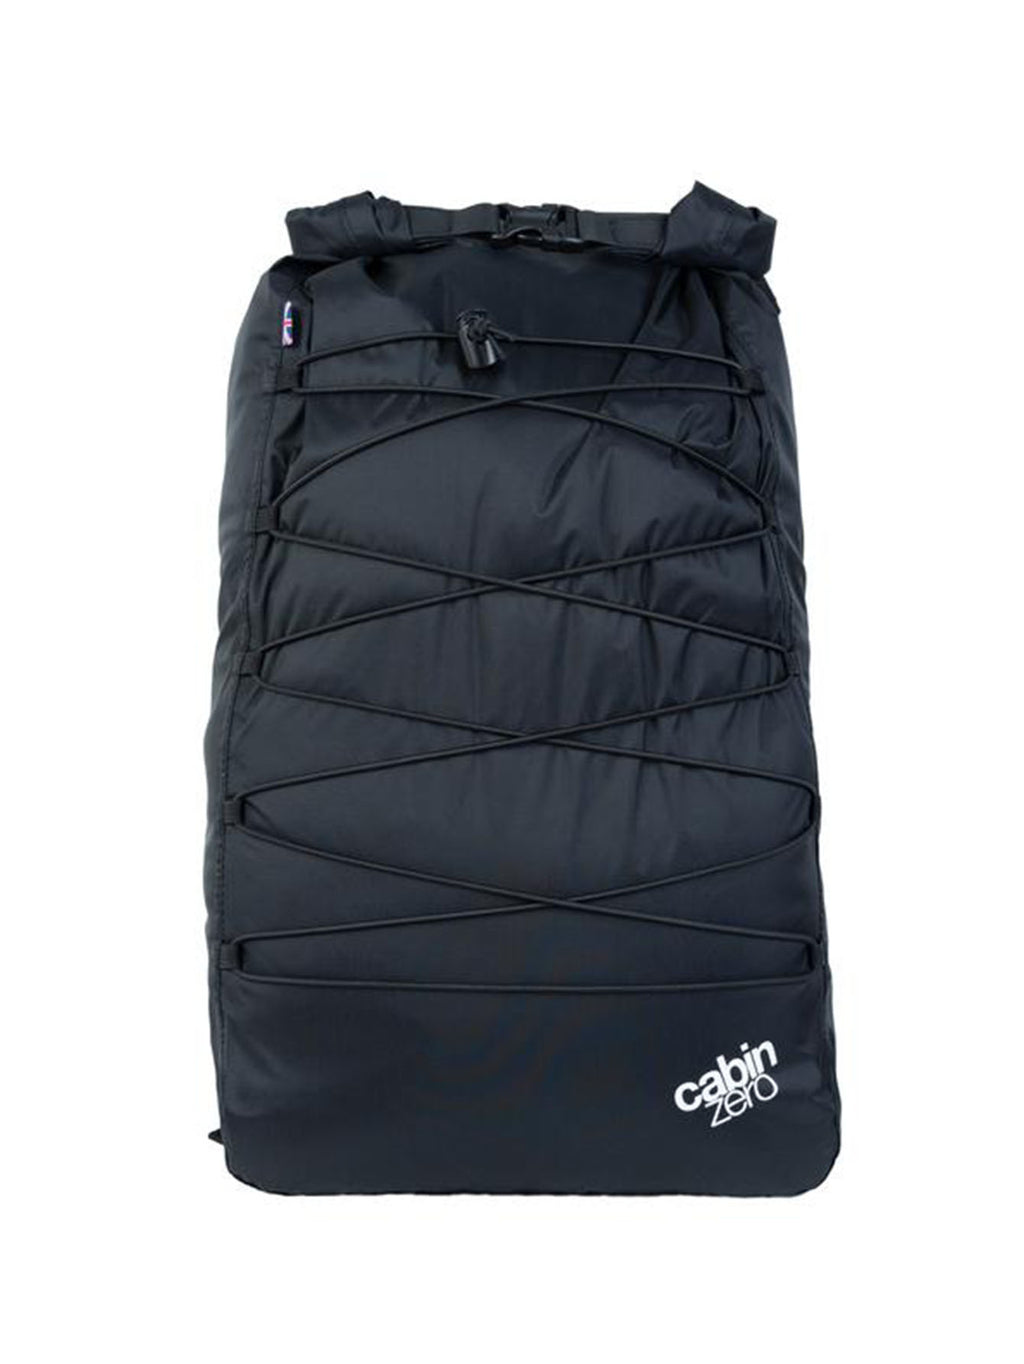 Cabinzero ADV Dry Waterproof Cross Body Bay 30L in Absolute Black Color